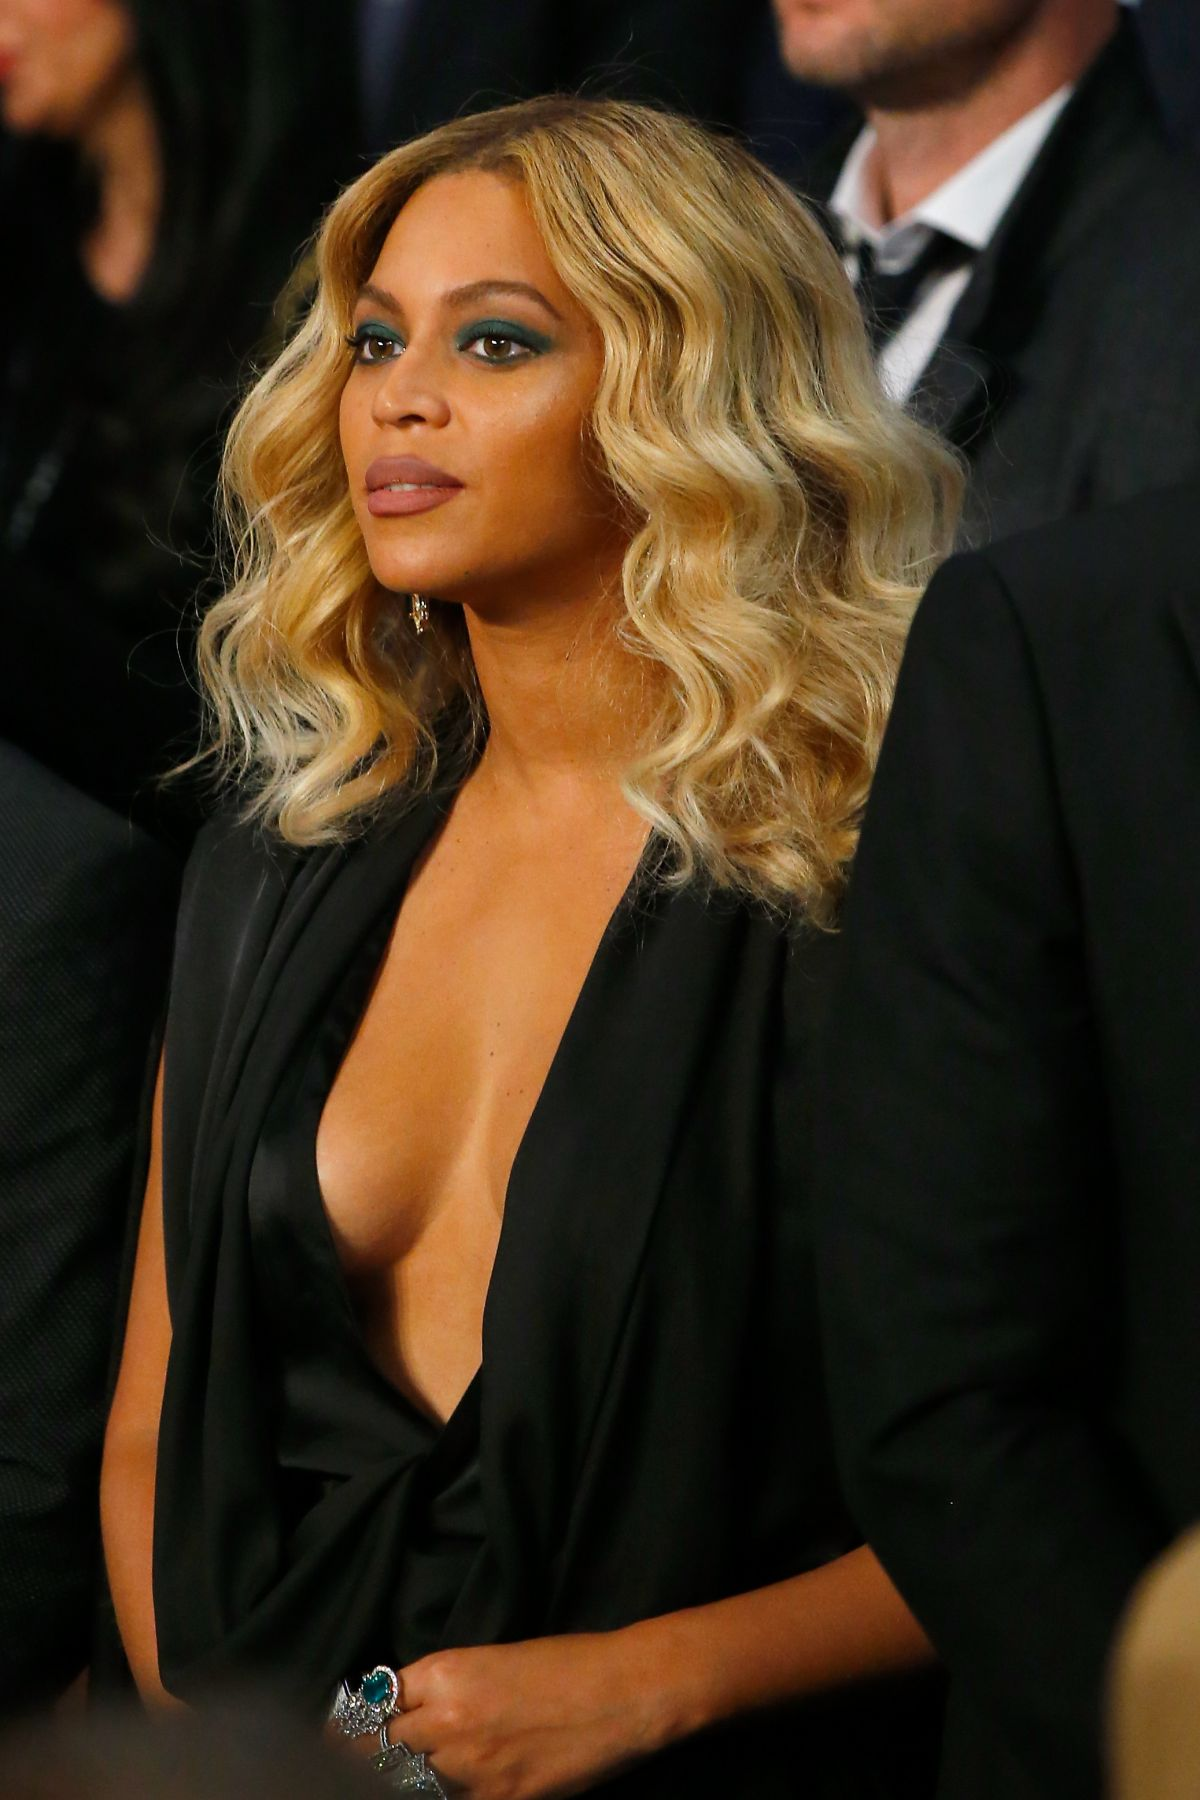 BEYONCE At Cotto Vs Canelo Fight In Las Vegas 11 21 2015